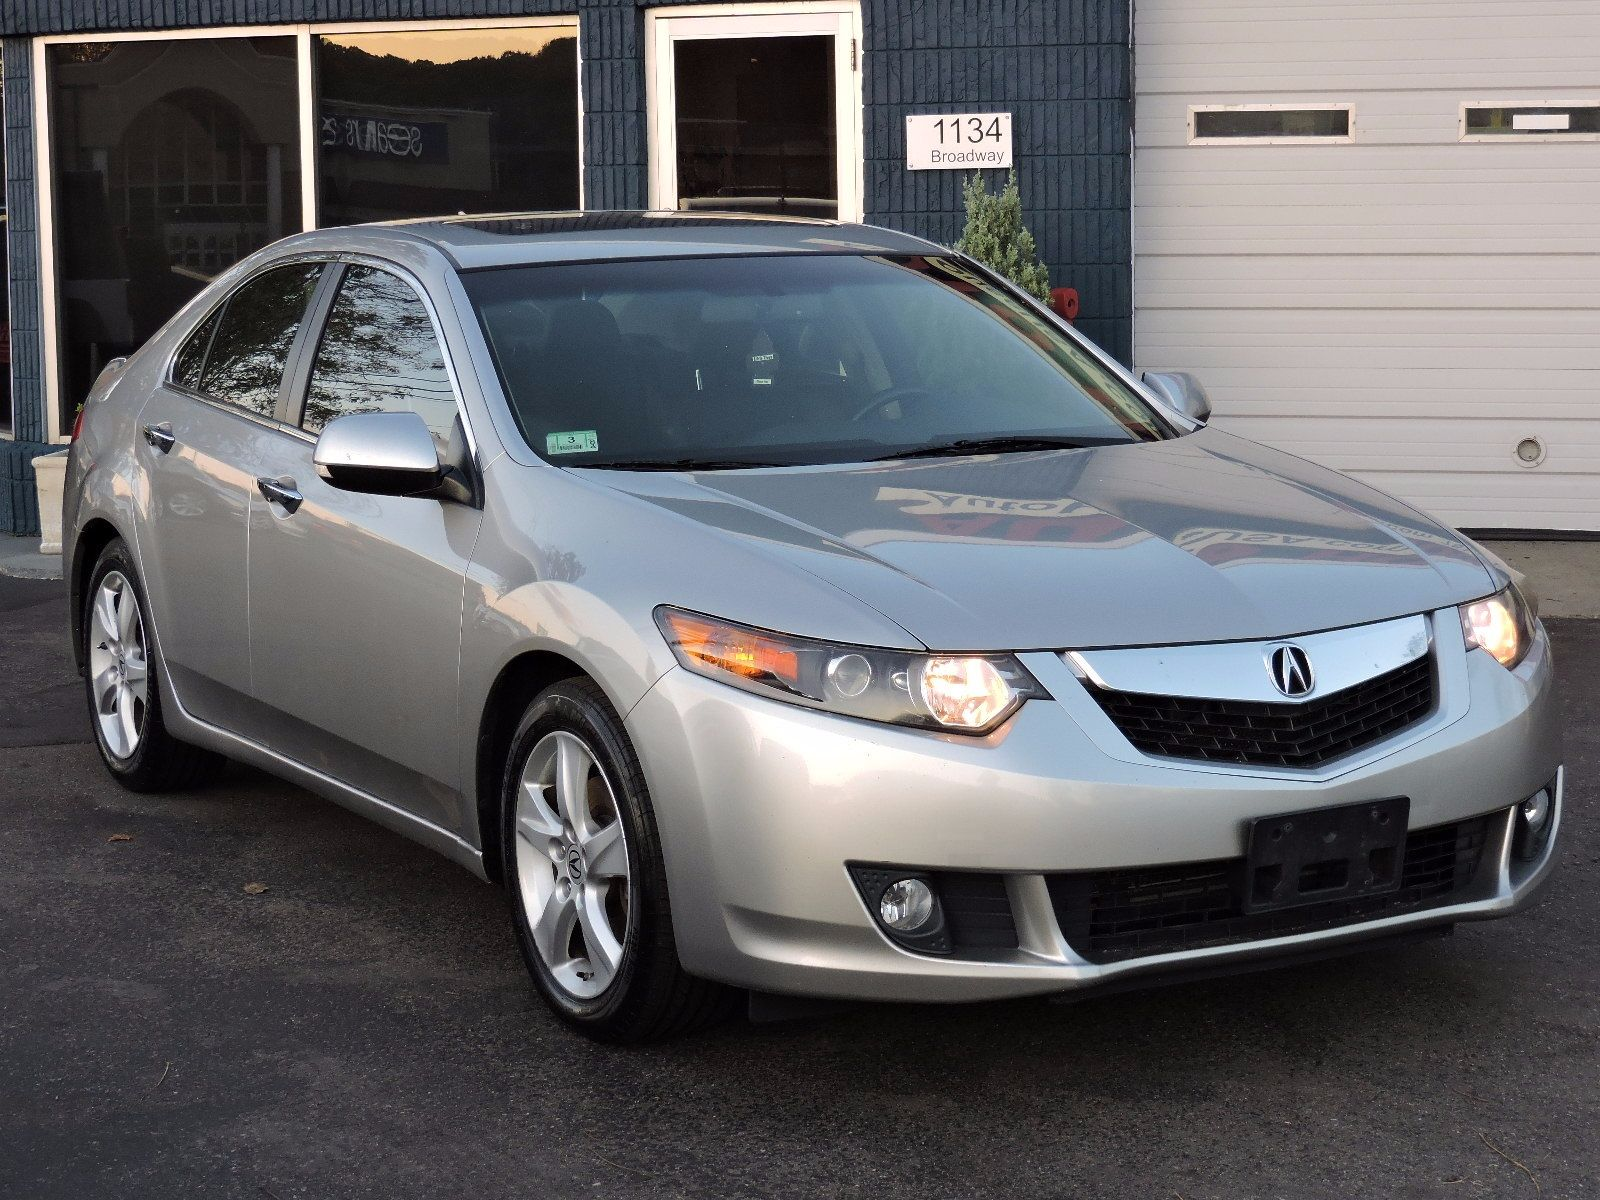 c tsx stock marietta for used l acura ga htm near sale